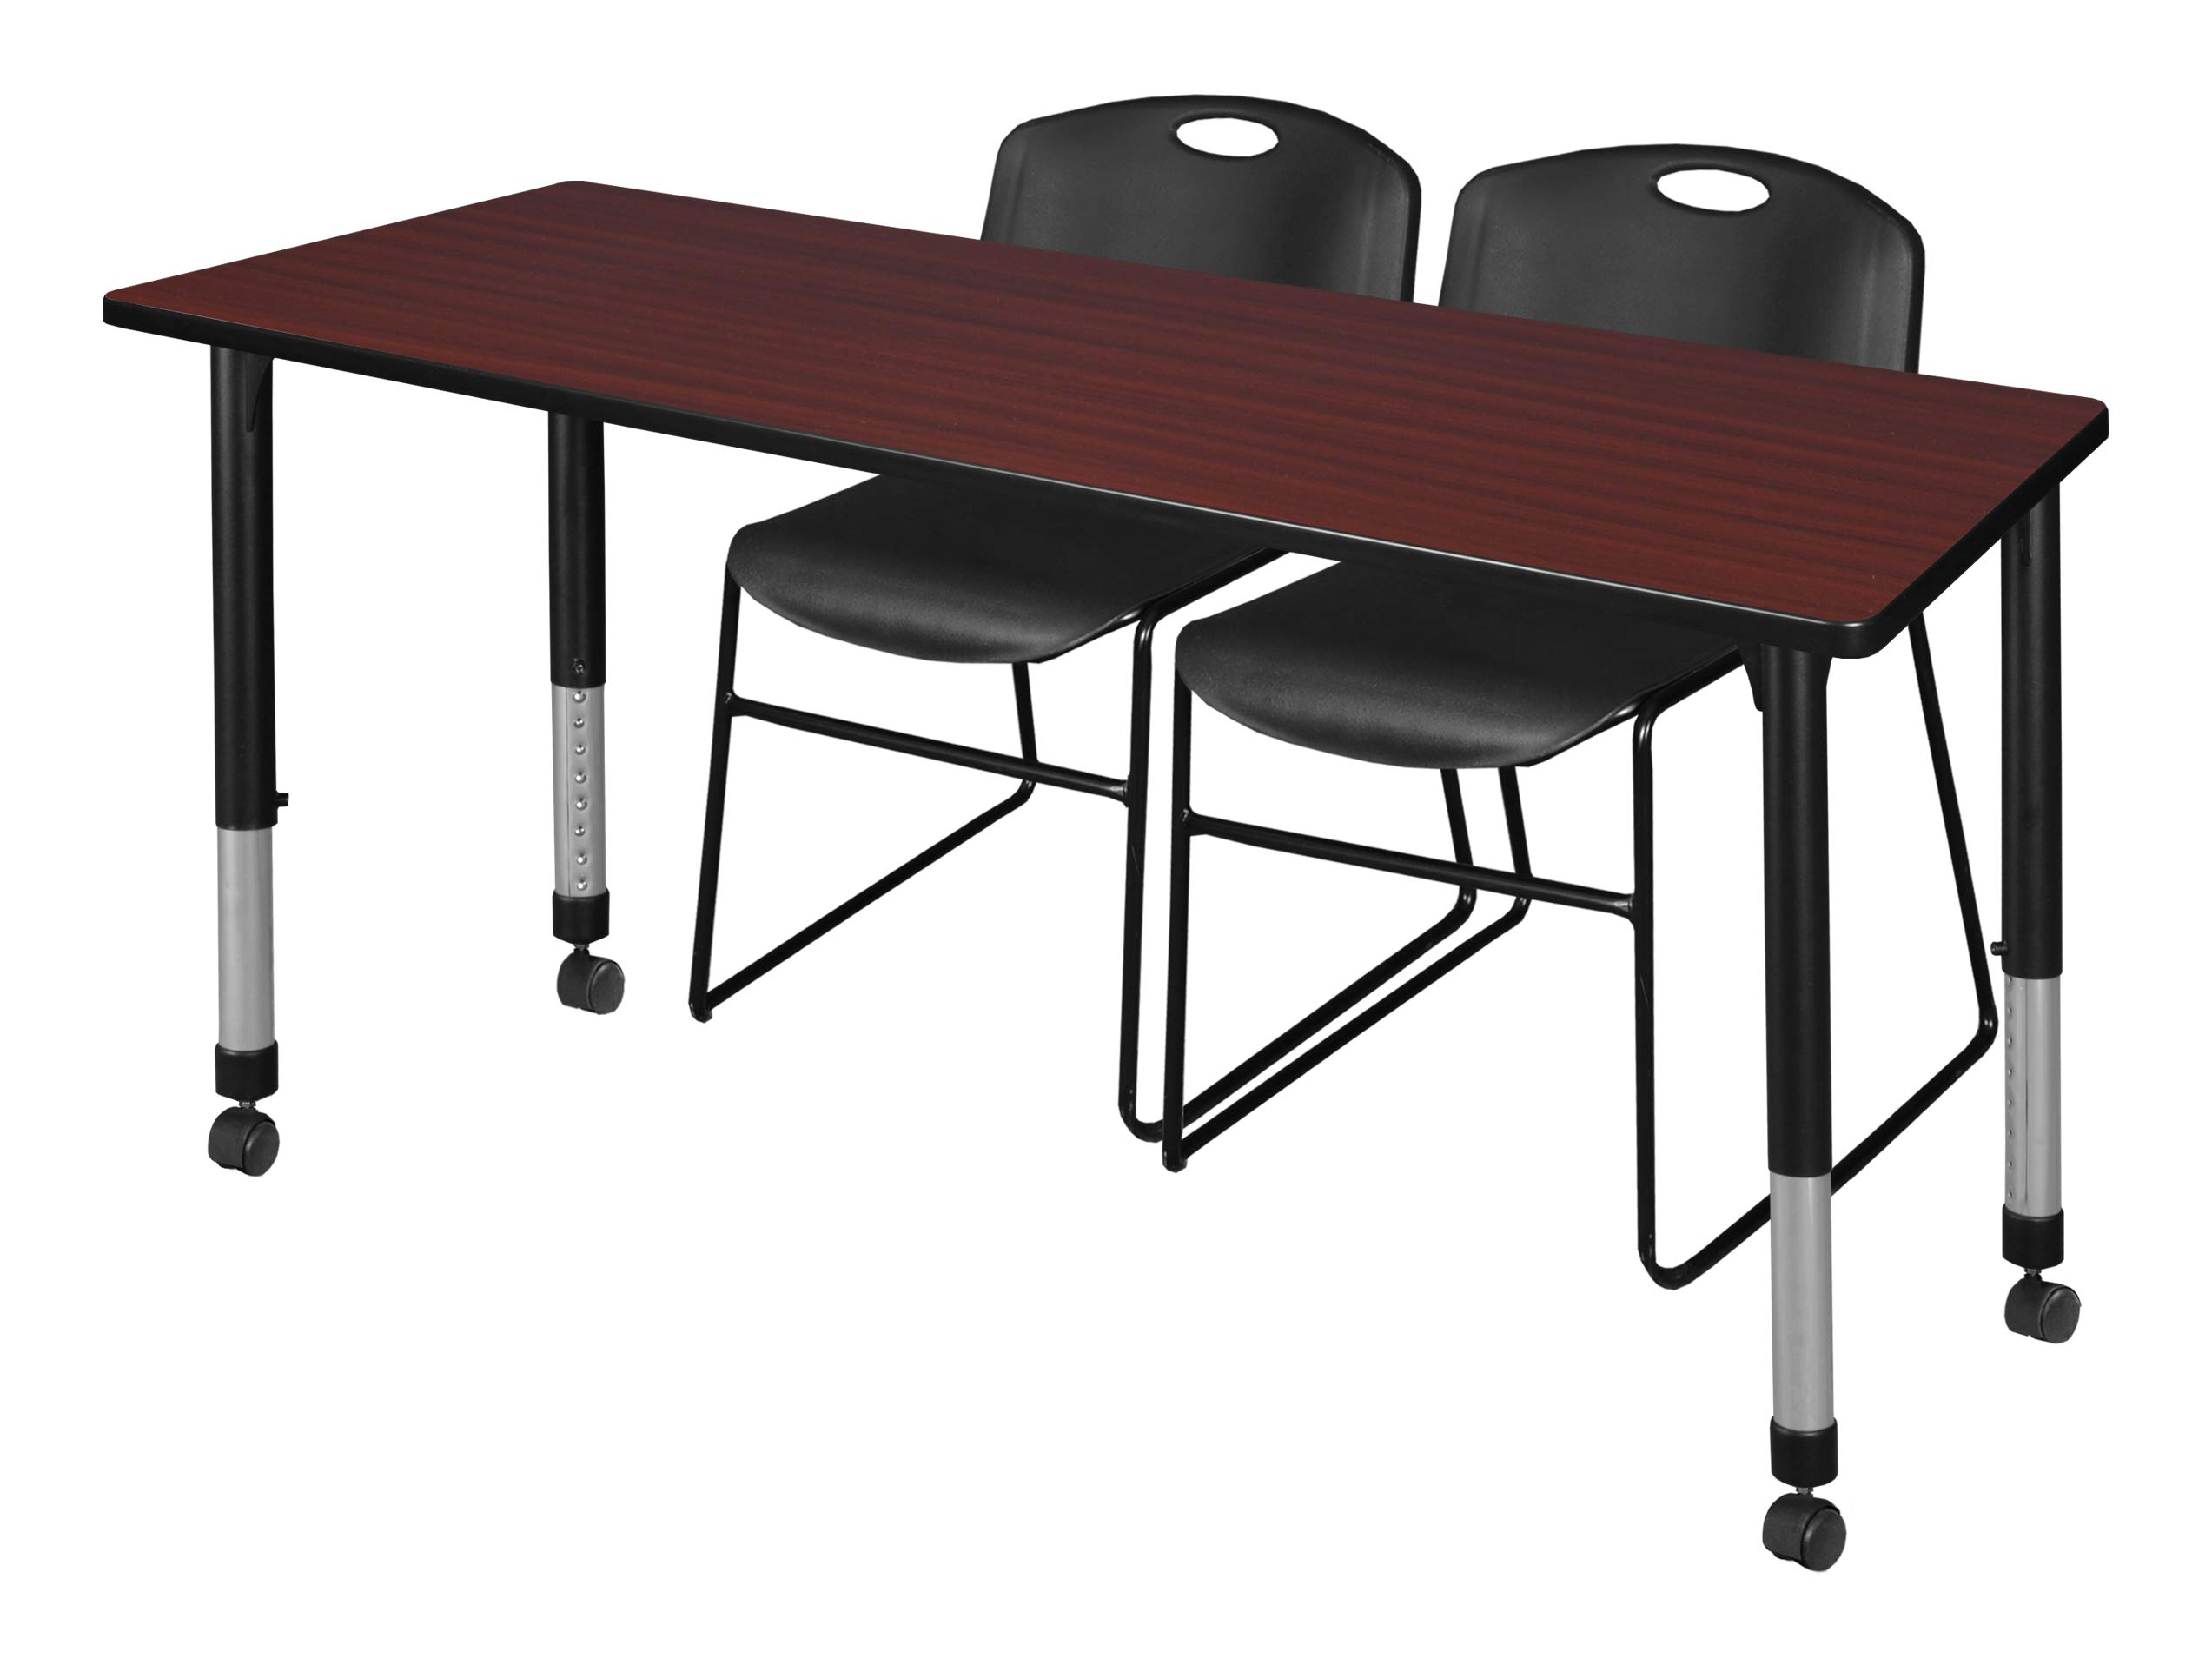 Regency MT6630MHAPCBK44BK Kee Height Adjustable Mobile Classroom Table Set with Two Zeng Chairs 66'' x 30'' Mahogany/Black